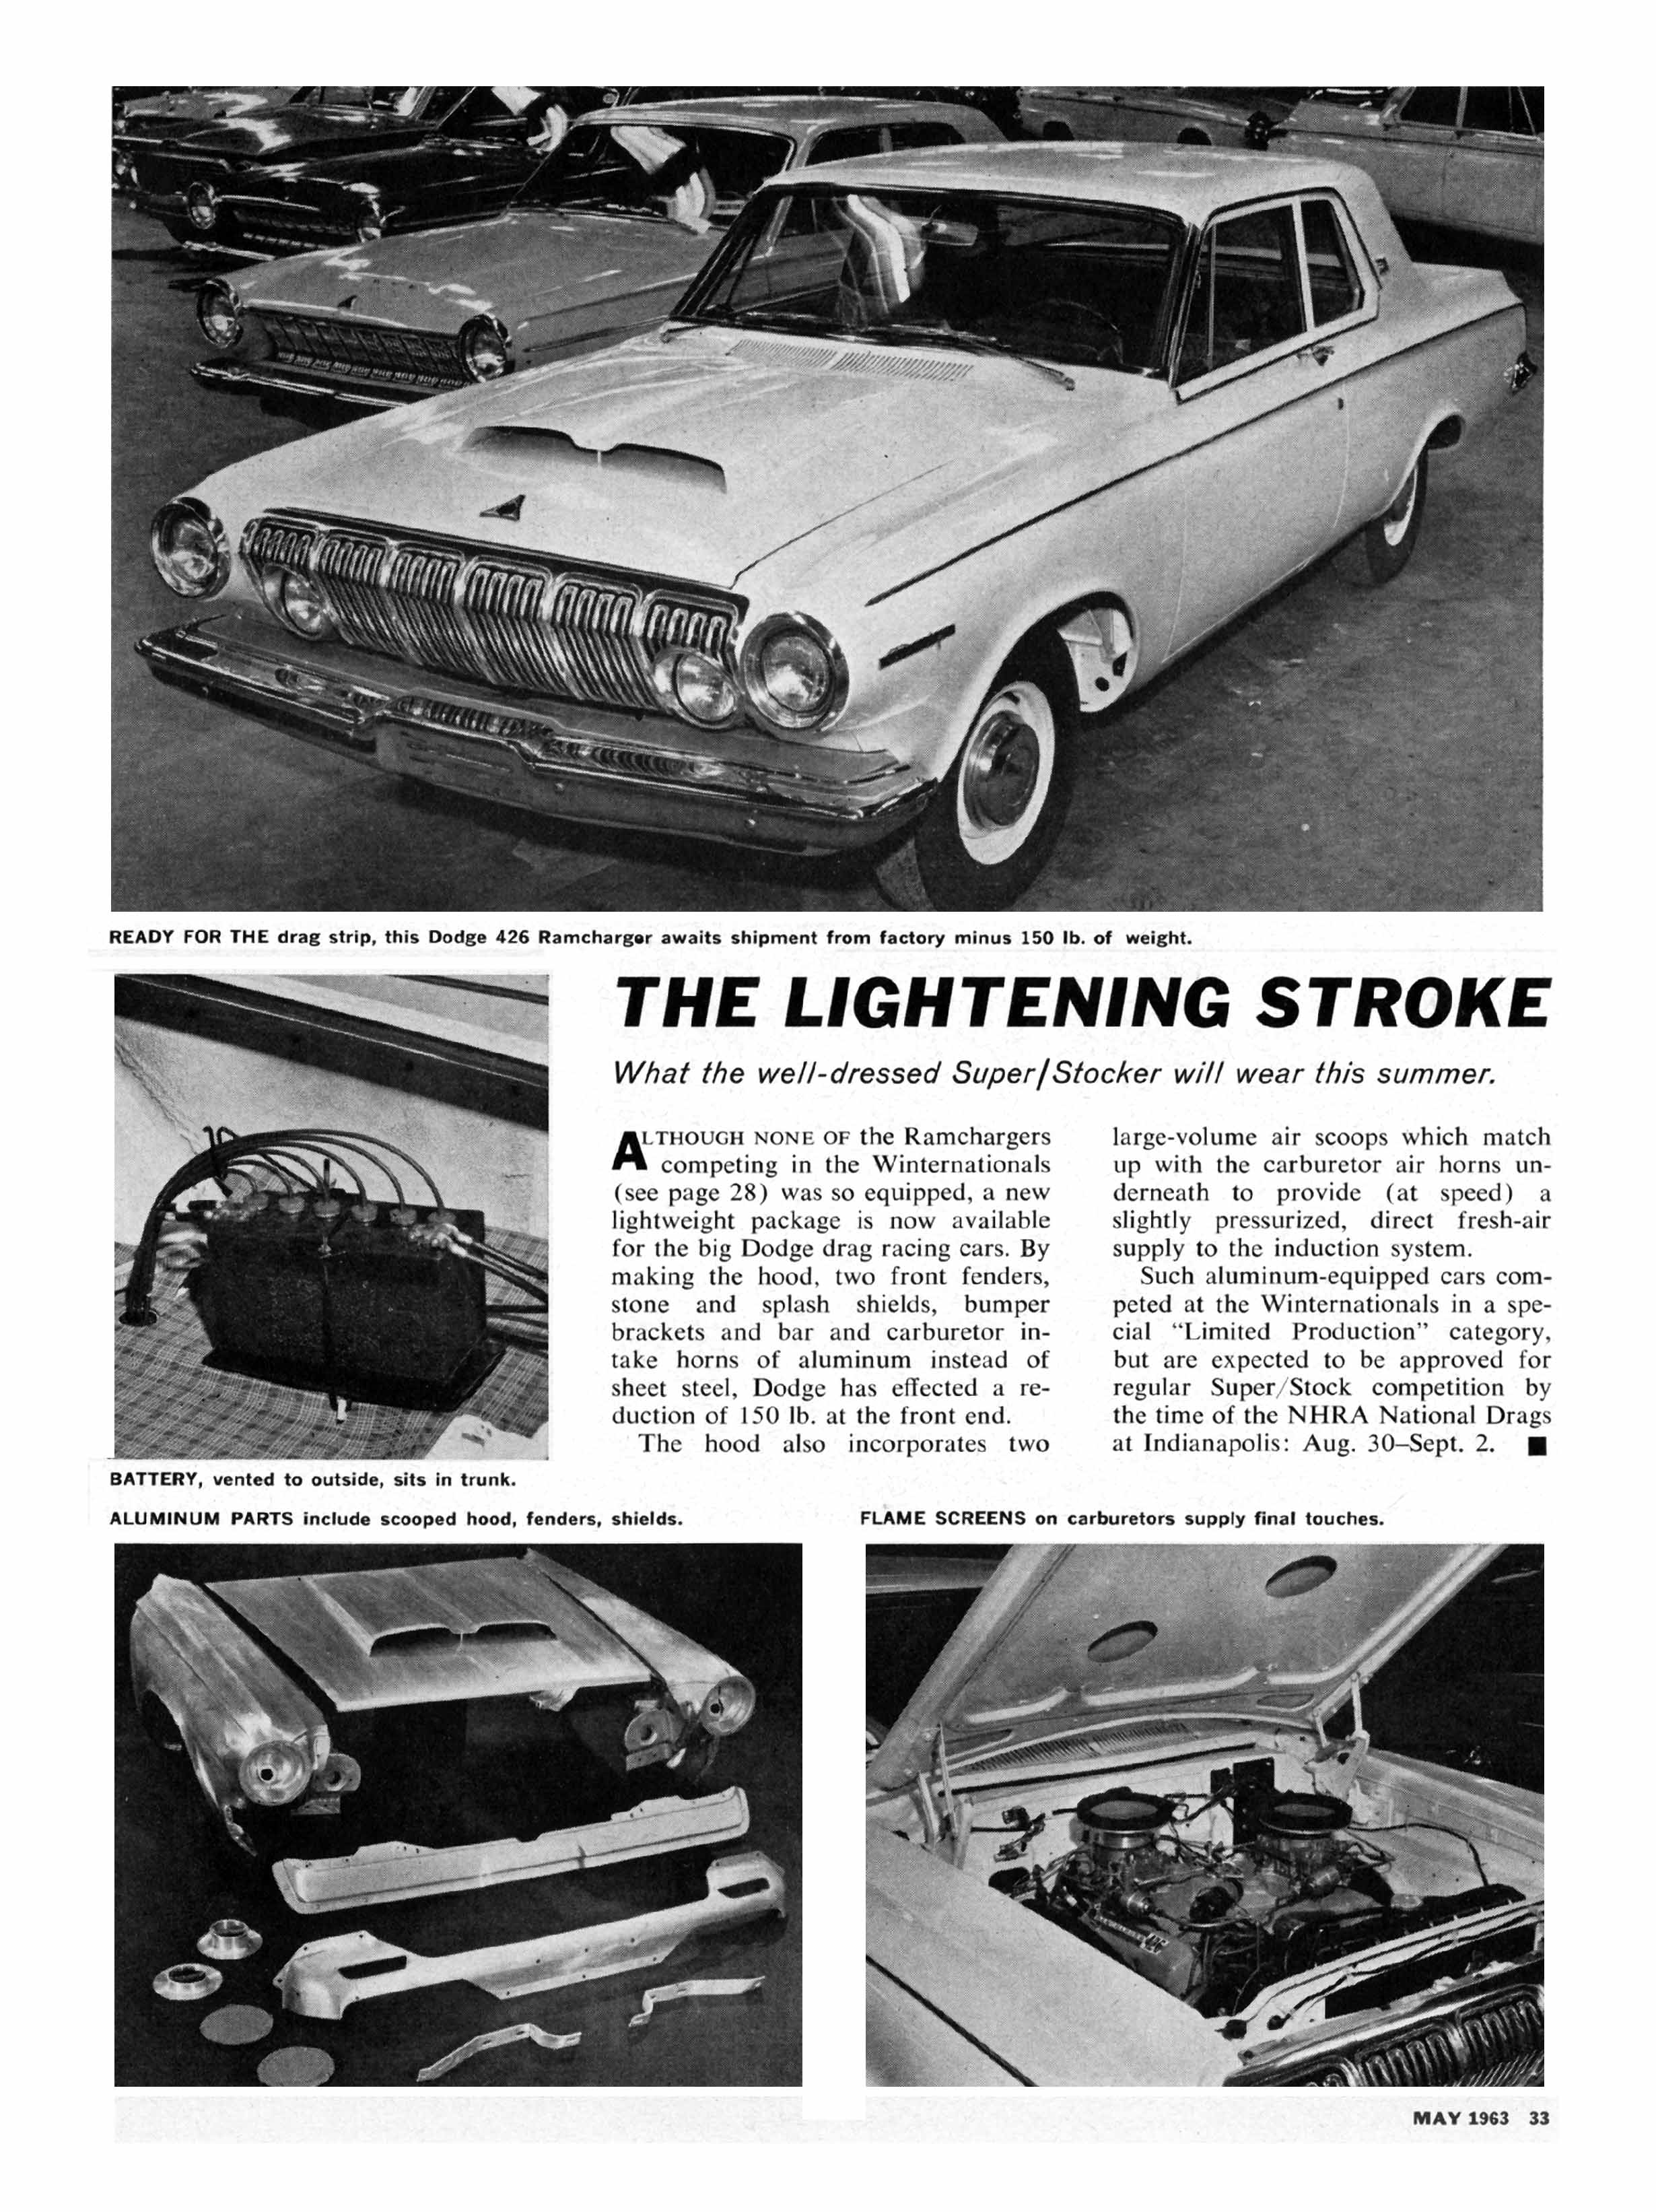 Auto History Preservation Society - News Article